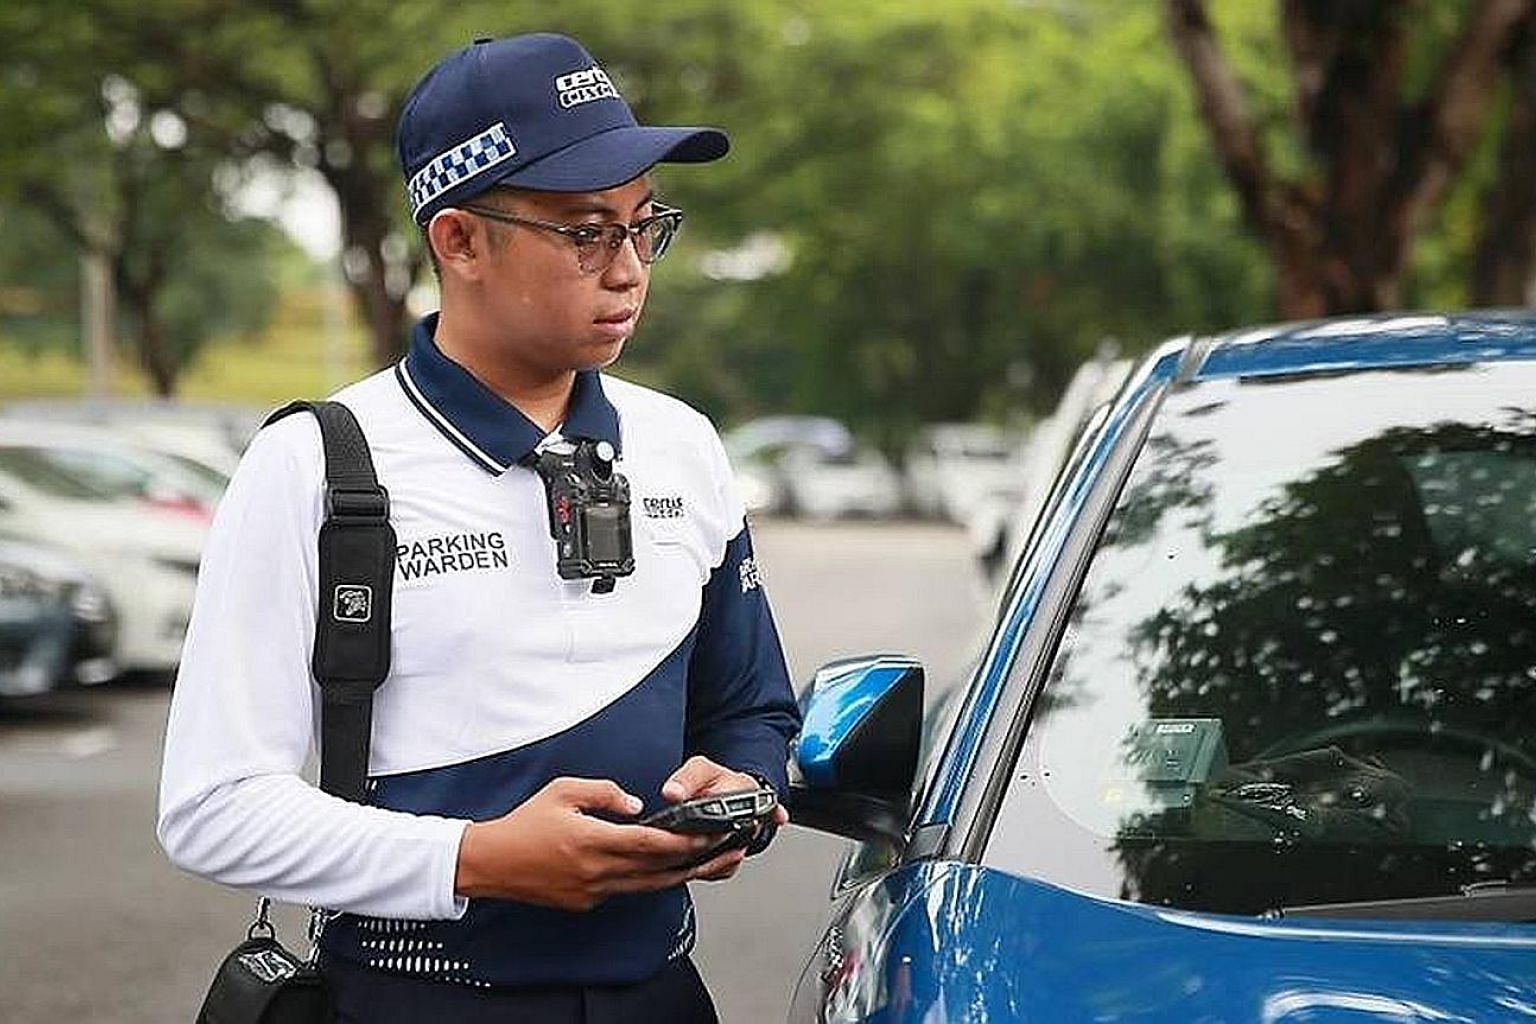 From July 1, errant motorists will face higher fines for parking offences, following a review by the Housing Board and Urban Redevelopment Authority. The two agencies last carried out a revision of parking fines in 1991.